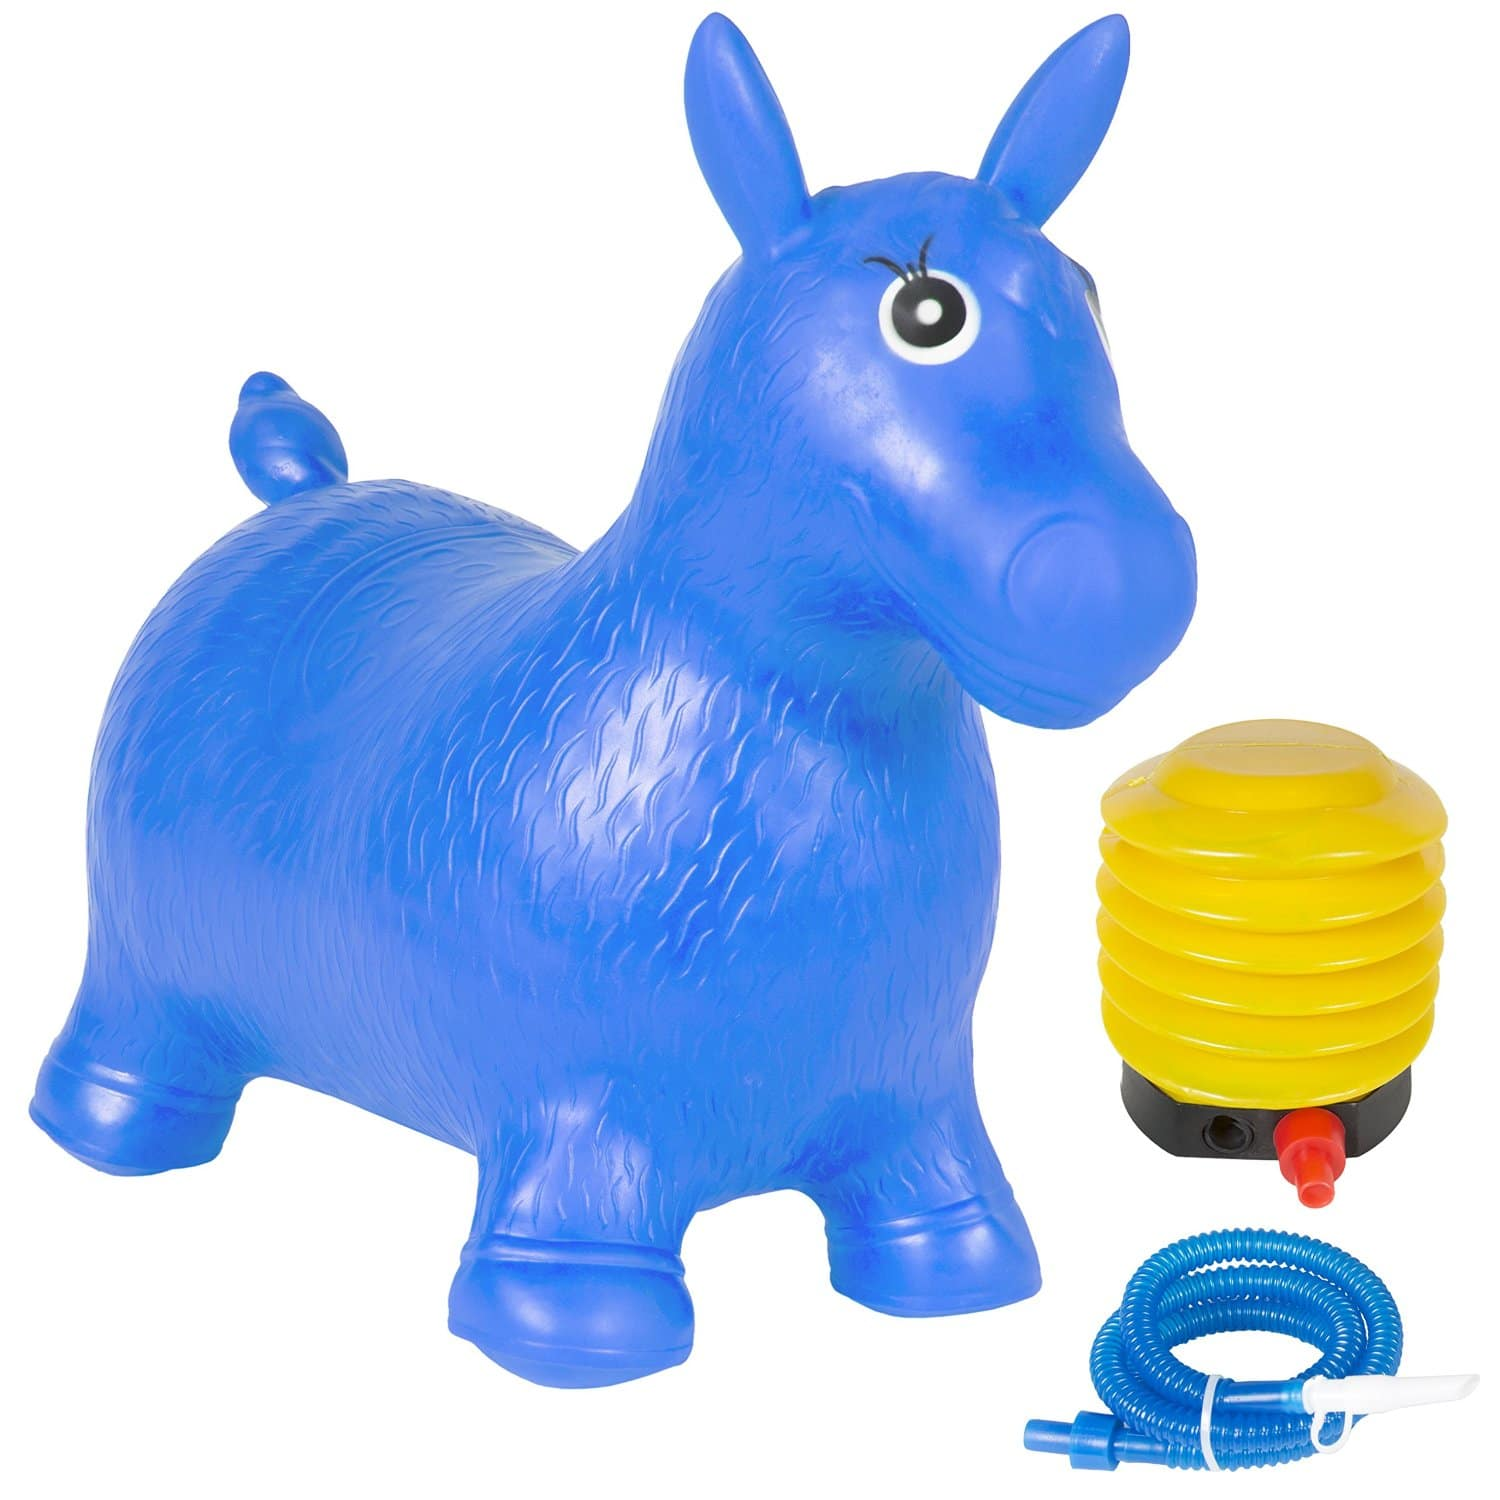 b8662795b Top 10 Best Inflatable Space Hoppers - best-inflatable-space-hopper